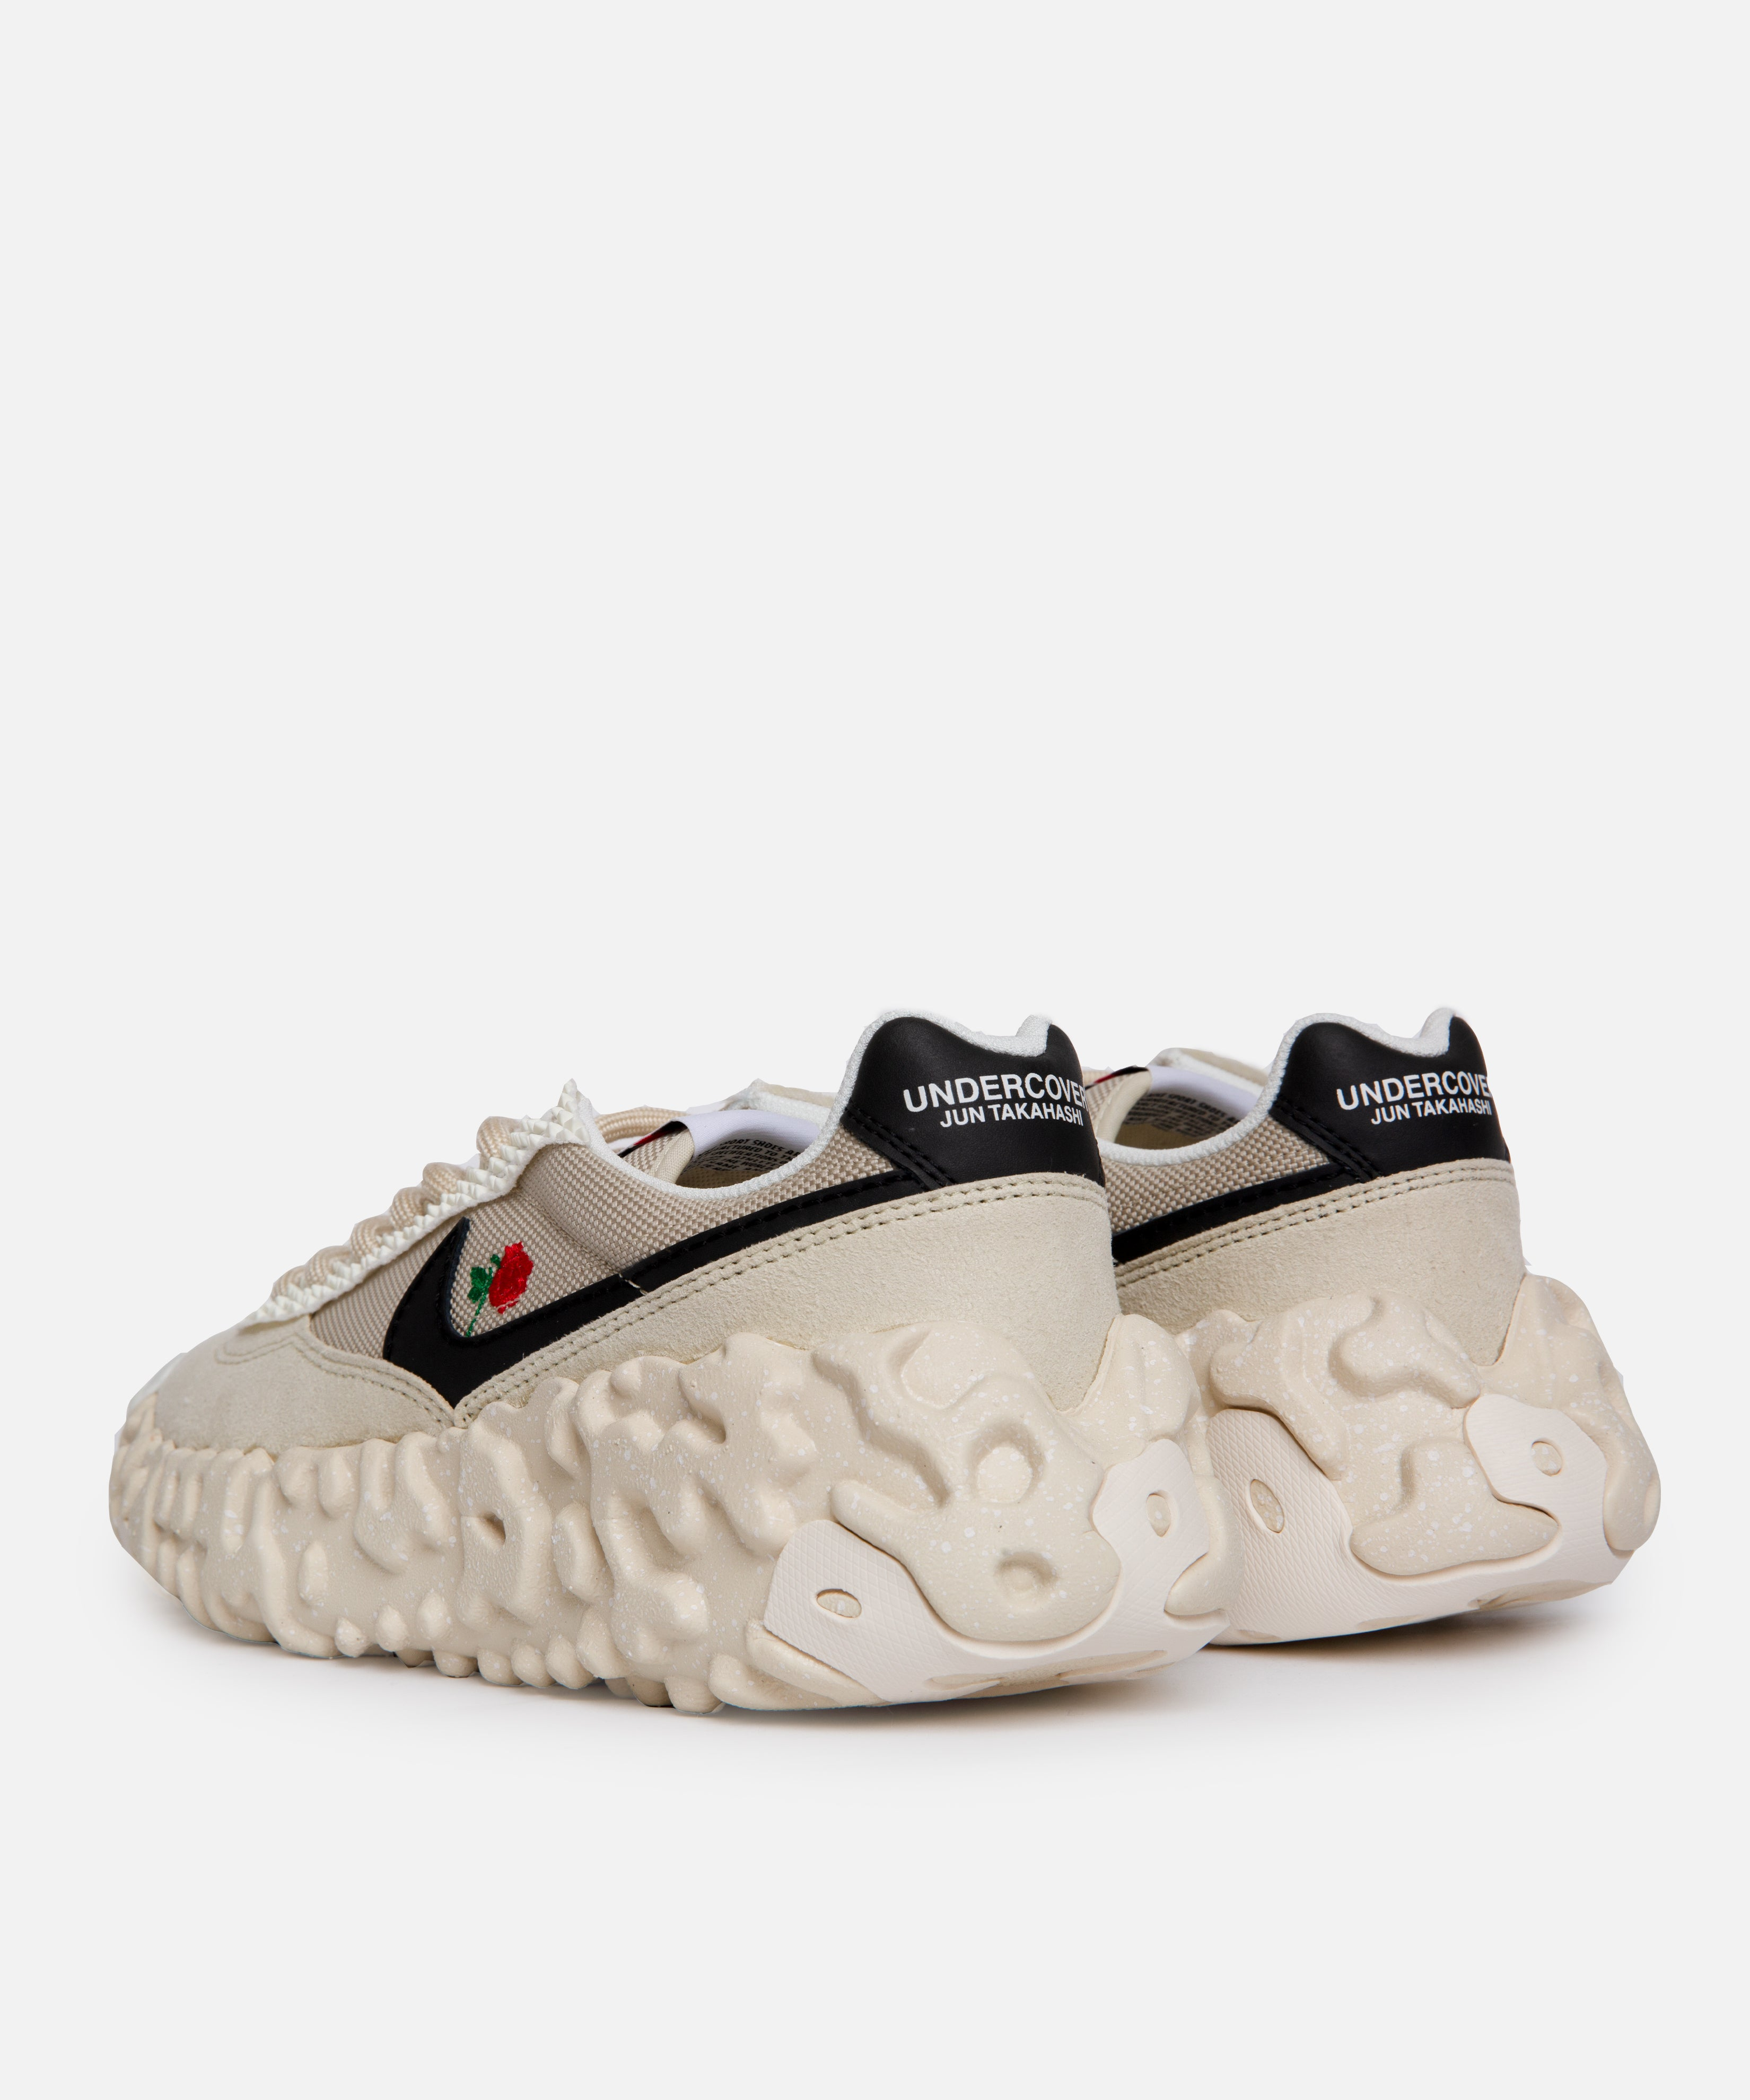 Nike x Undercover Overbreak (Overcast/Black-Fossil-Sail)